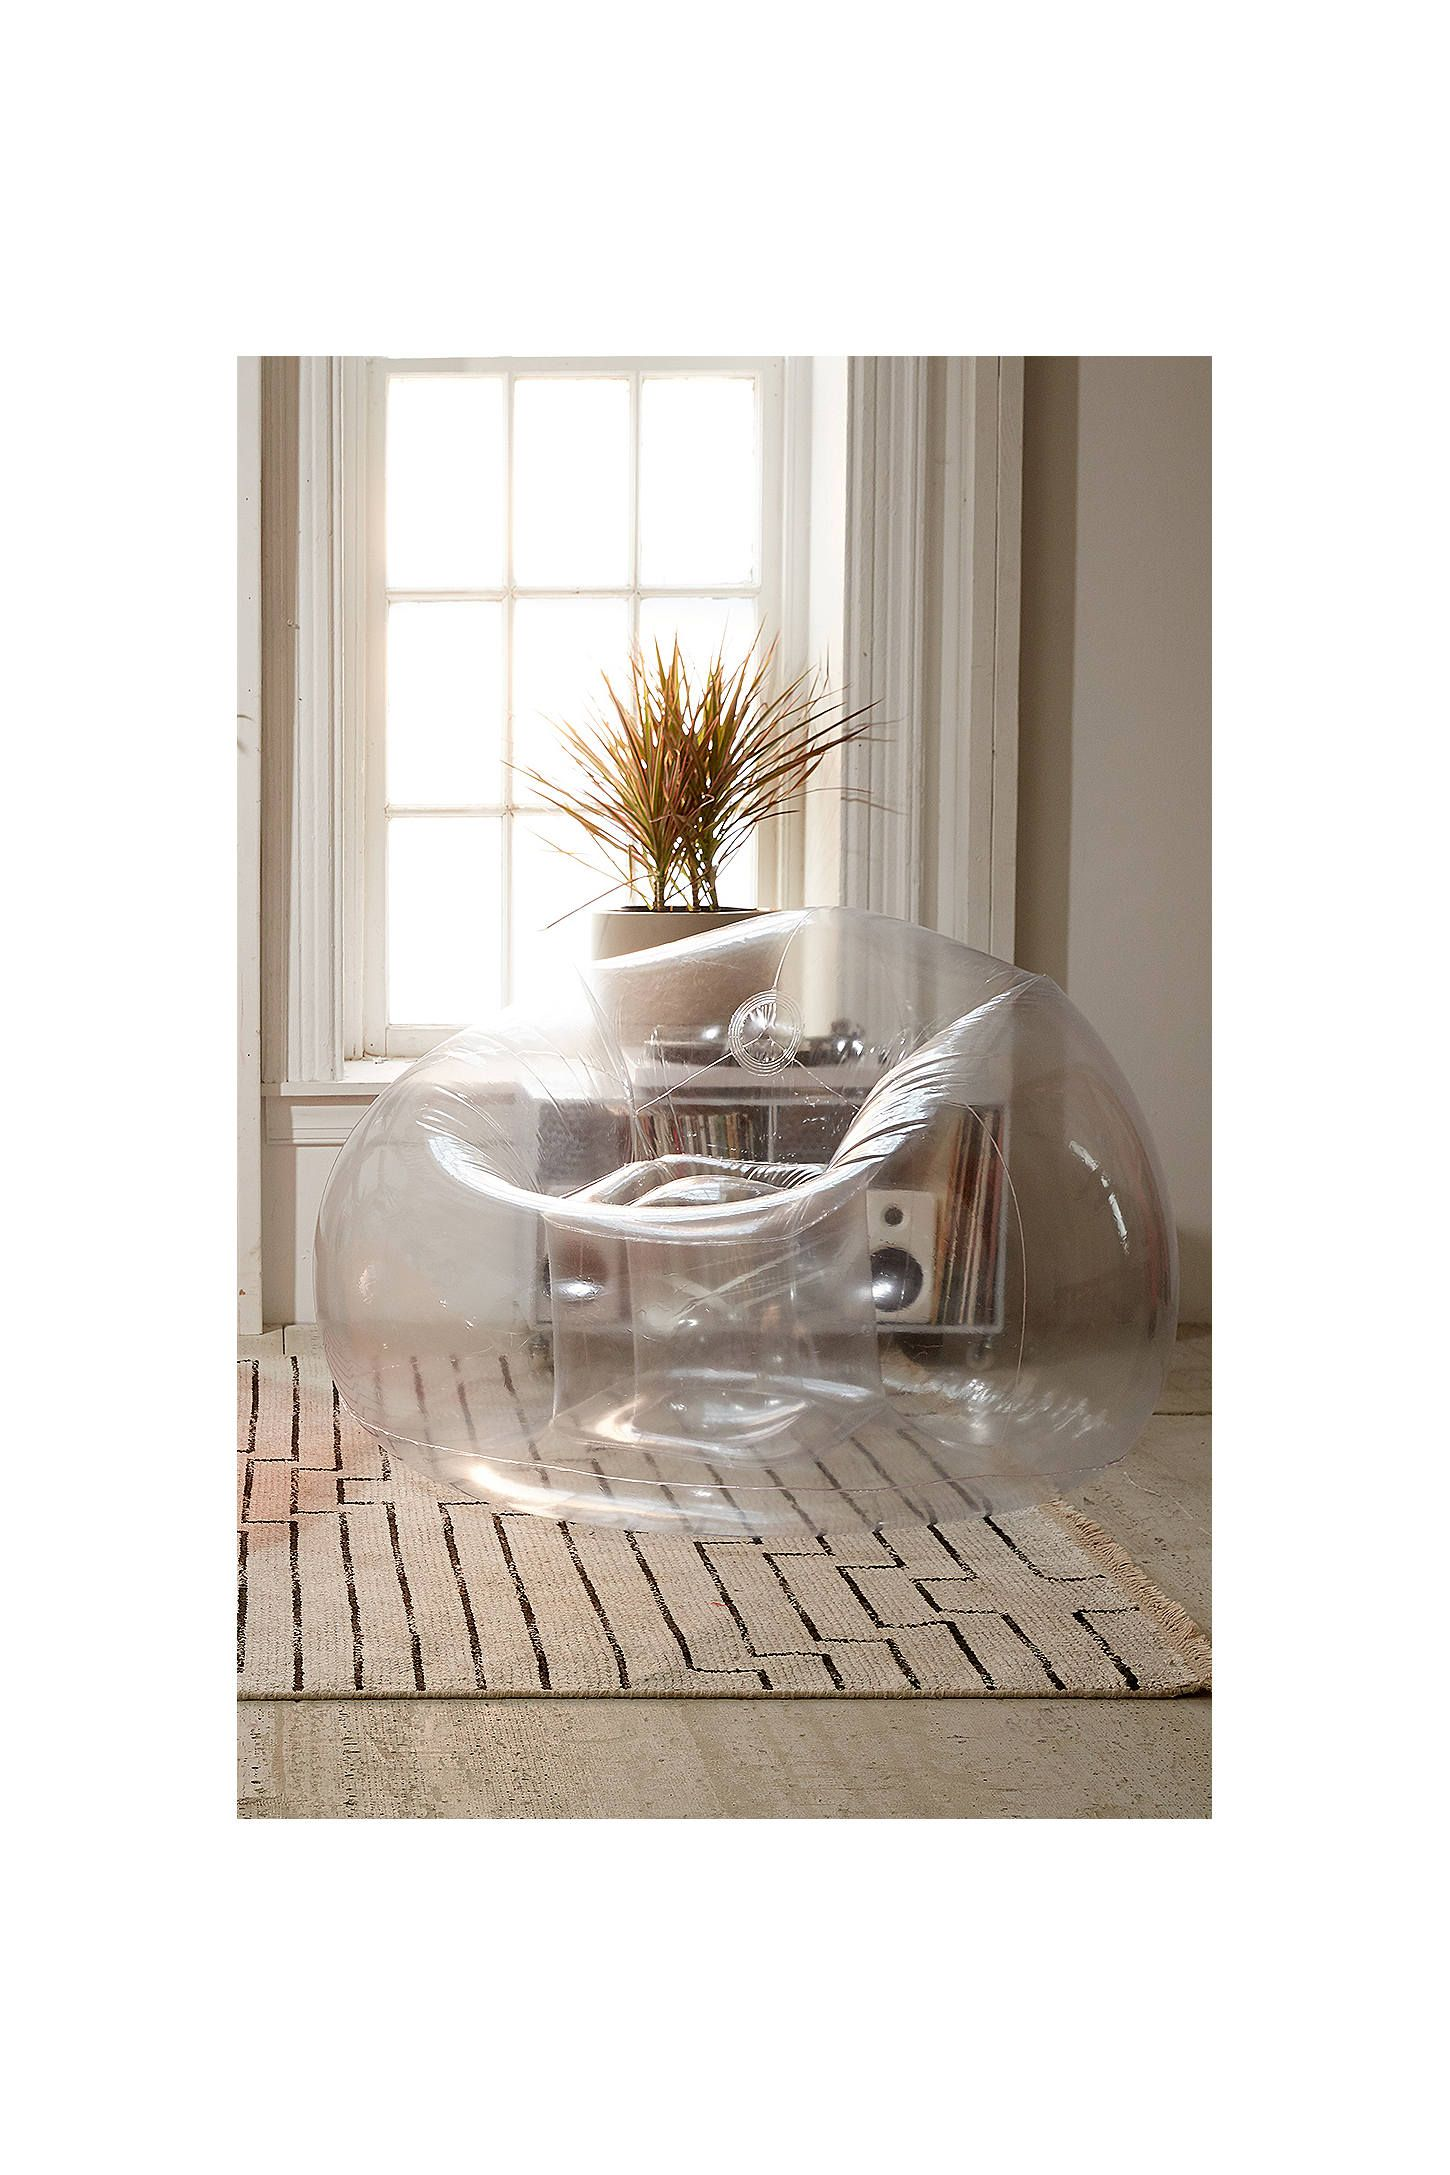 Shop trixie inflatable chair at urban outfitters today we carry all the latest styles colors and brands for you to choose from right here